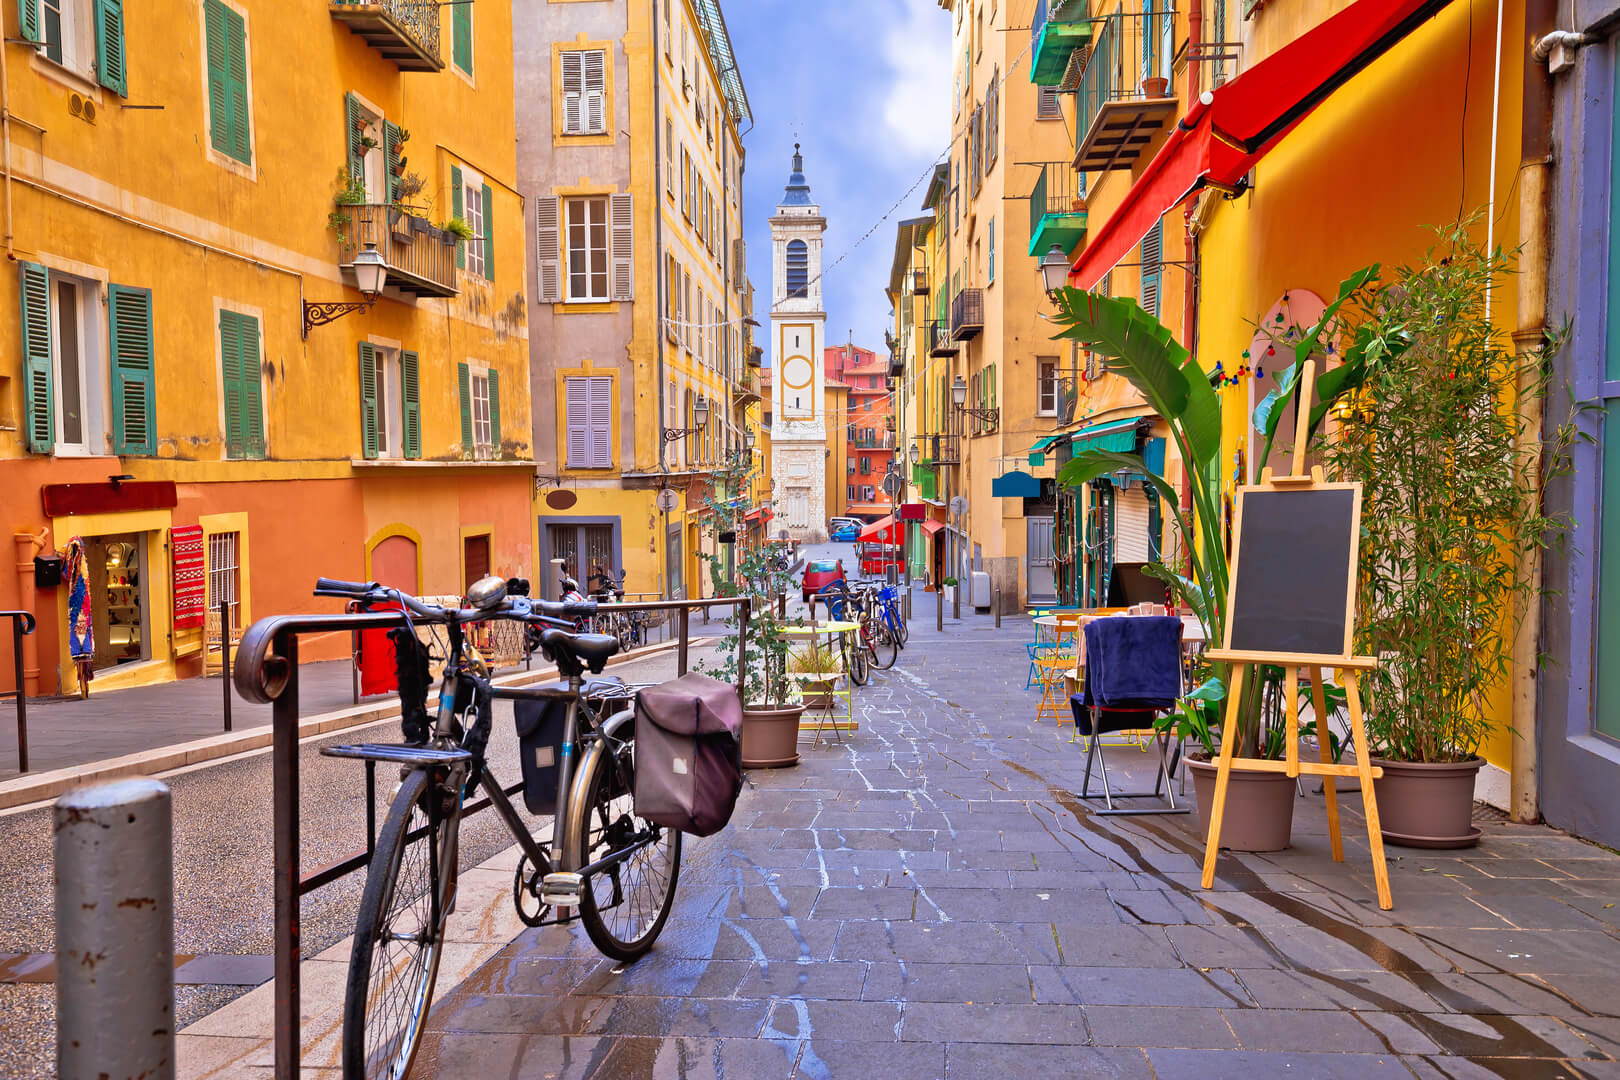 Beautiful colourful street architecture and view of the church, tourist destination of the French Riviera, Alpes Maritimes Ministry of France